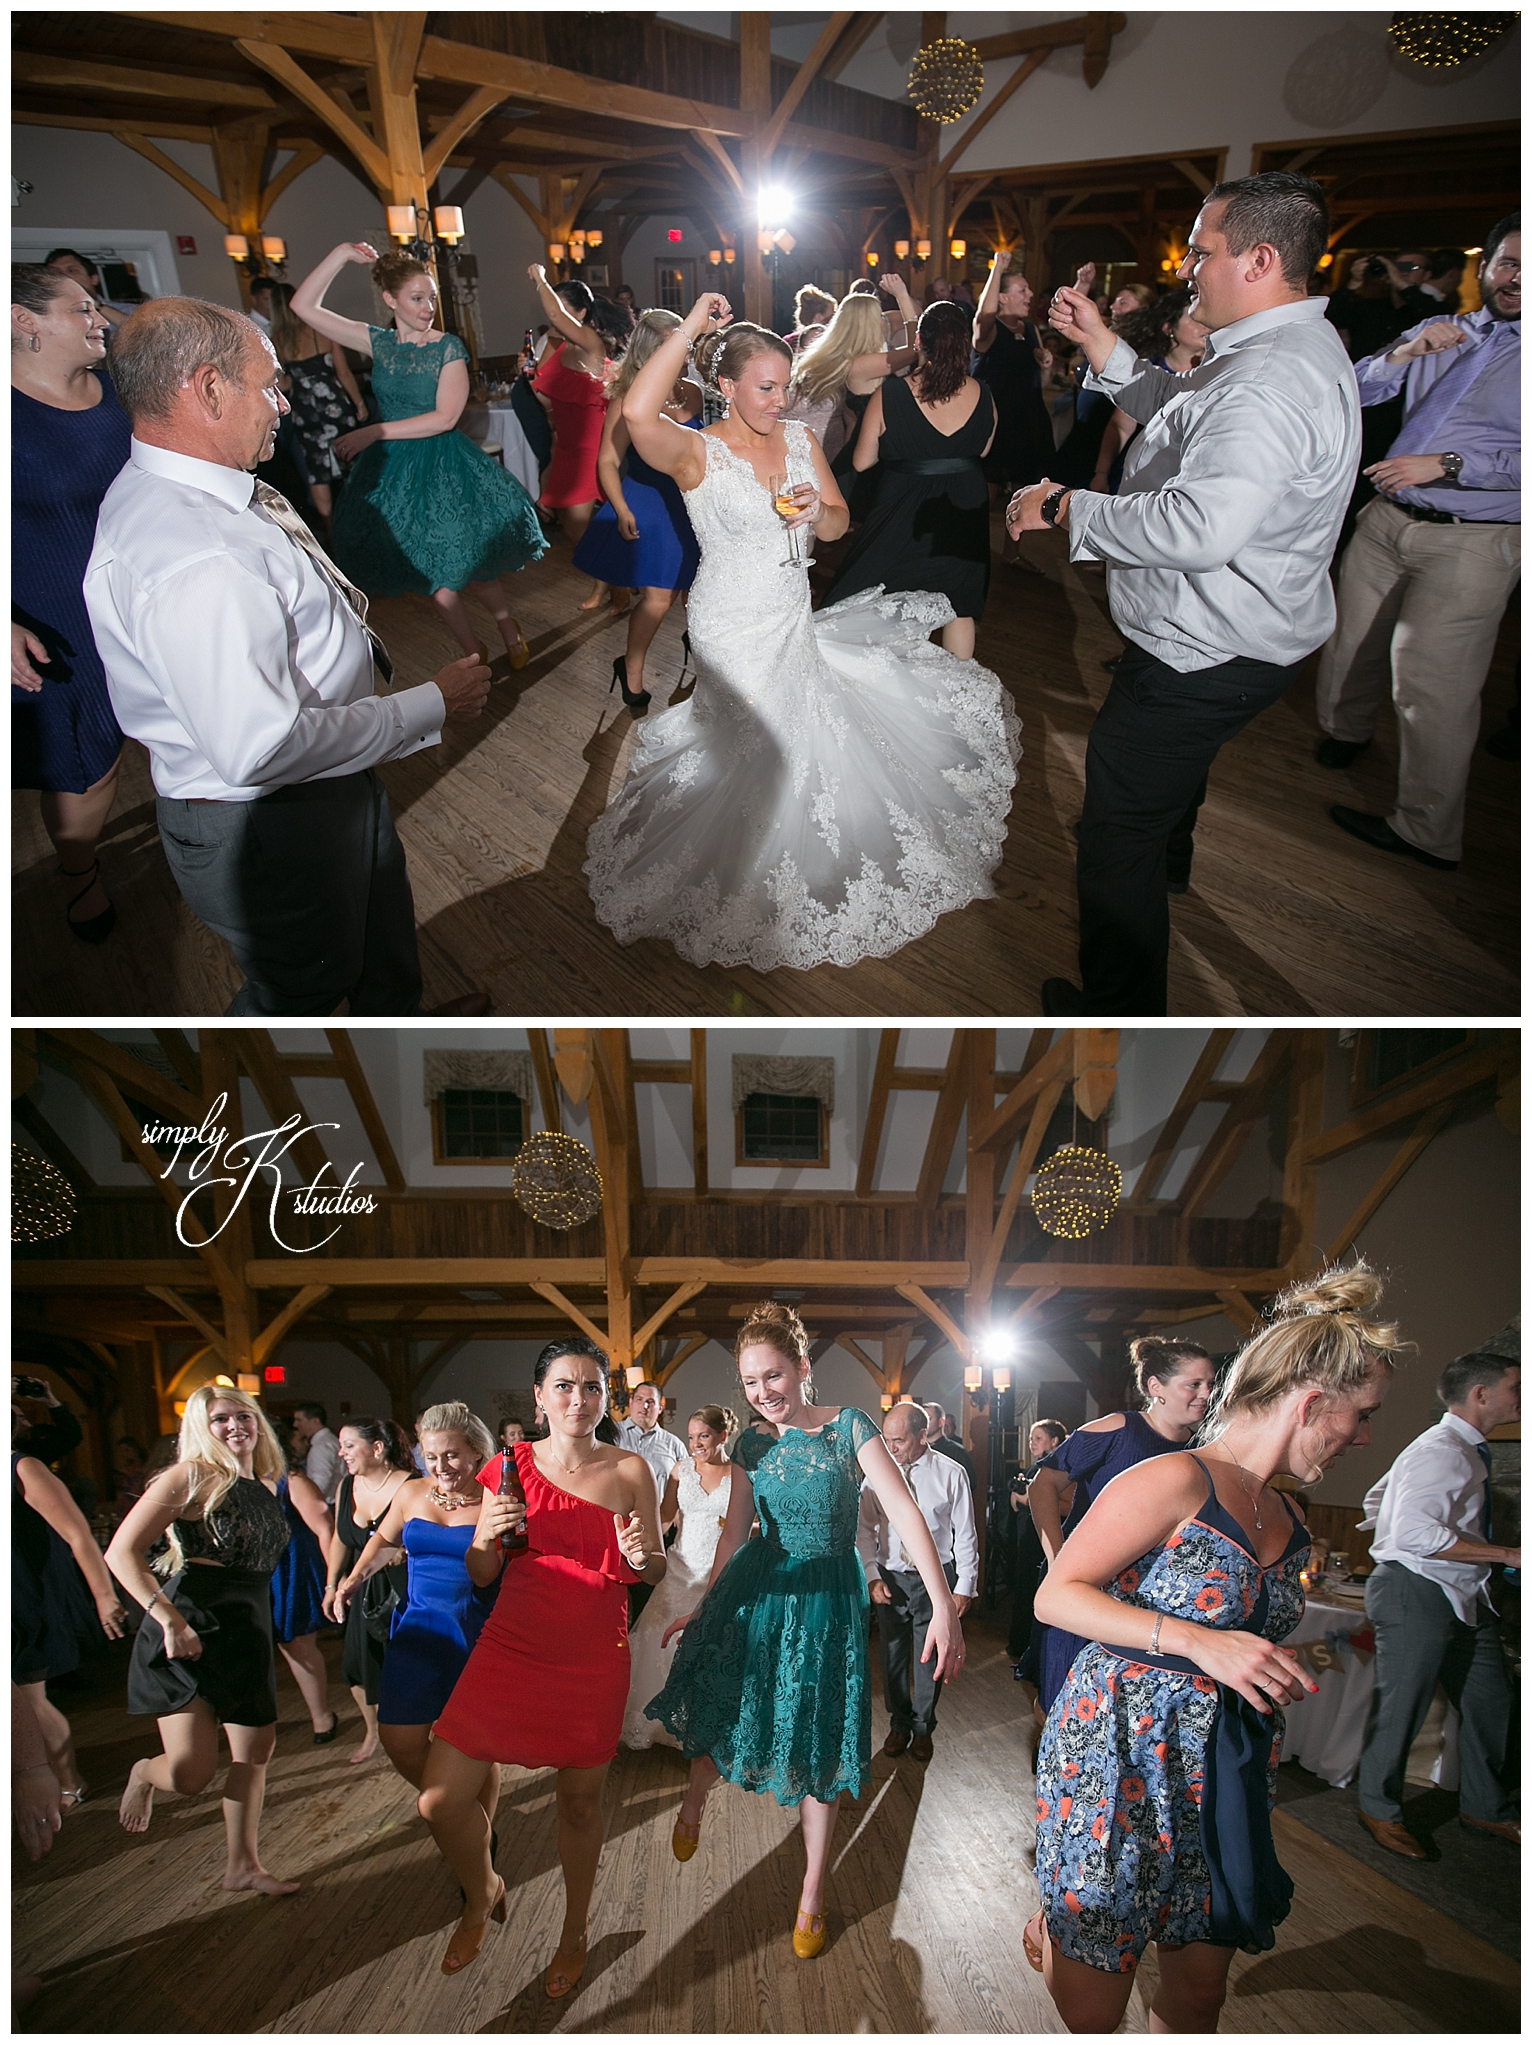 Wedding Reception at Harrington Farm.jpg